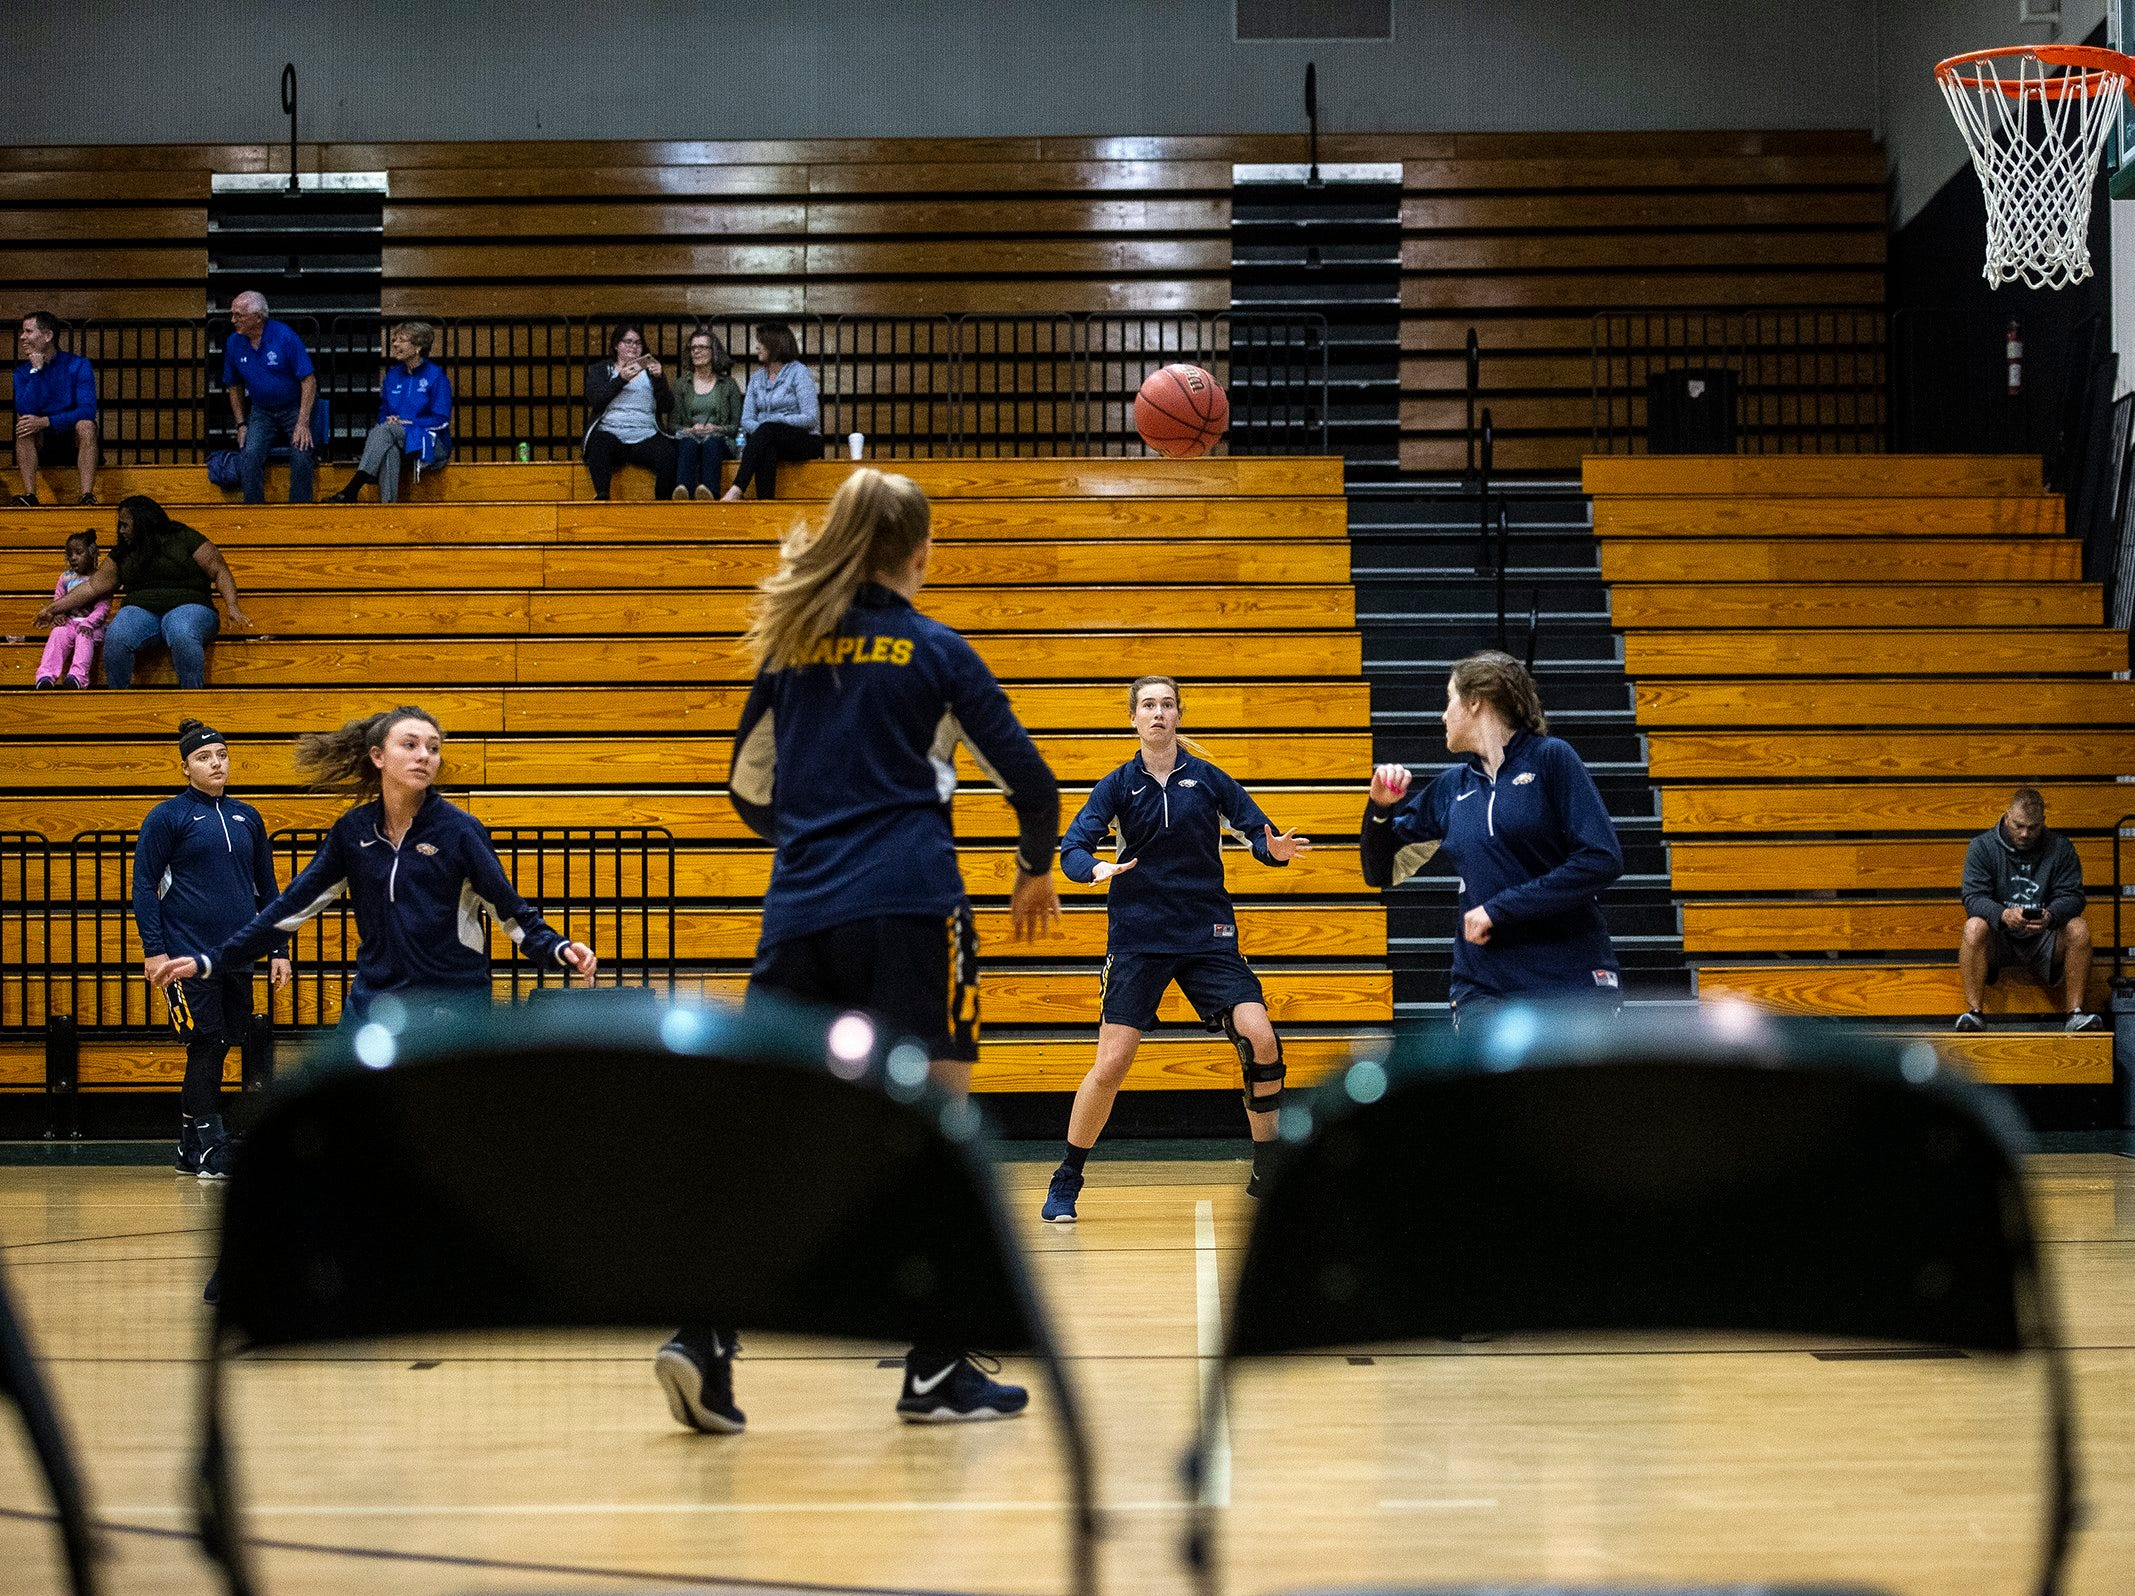 Naples High School warms up during the Class 7A-District 12 Championship in Naples, Fla., on Friday, Feb. 8, 2019.